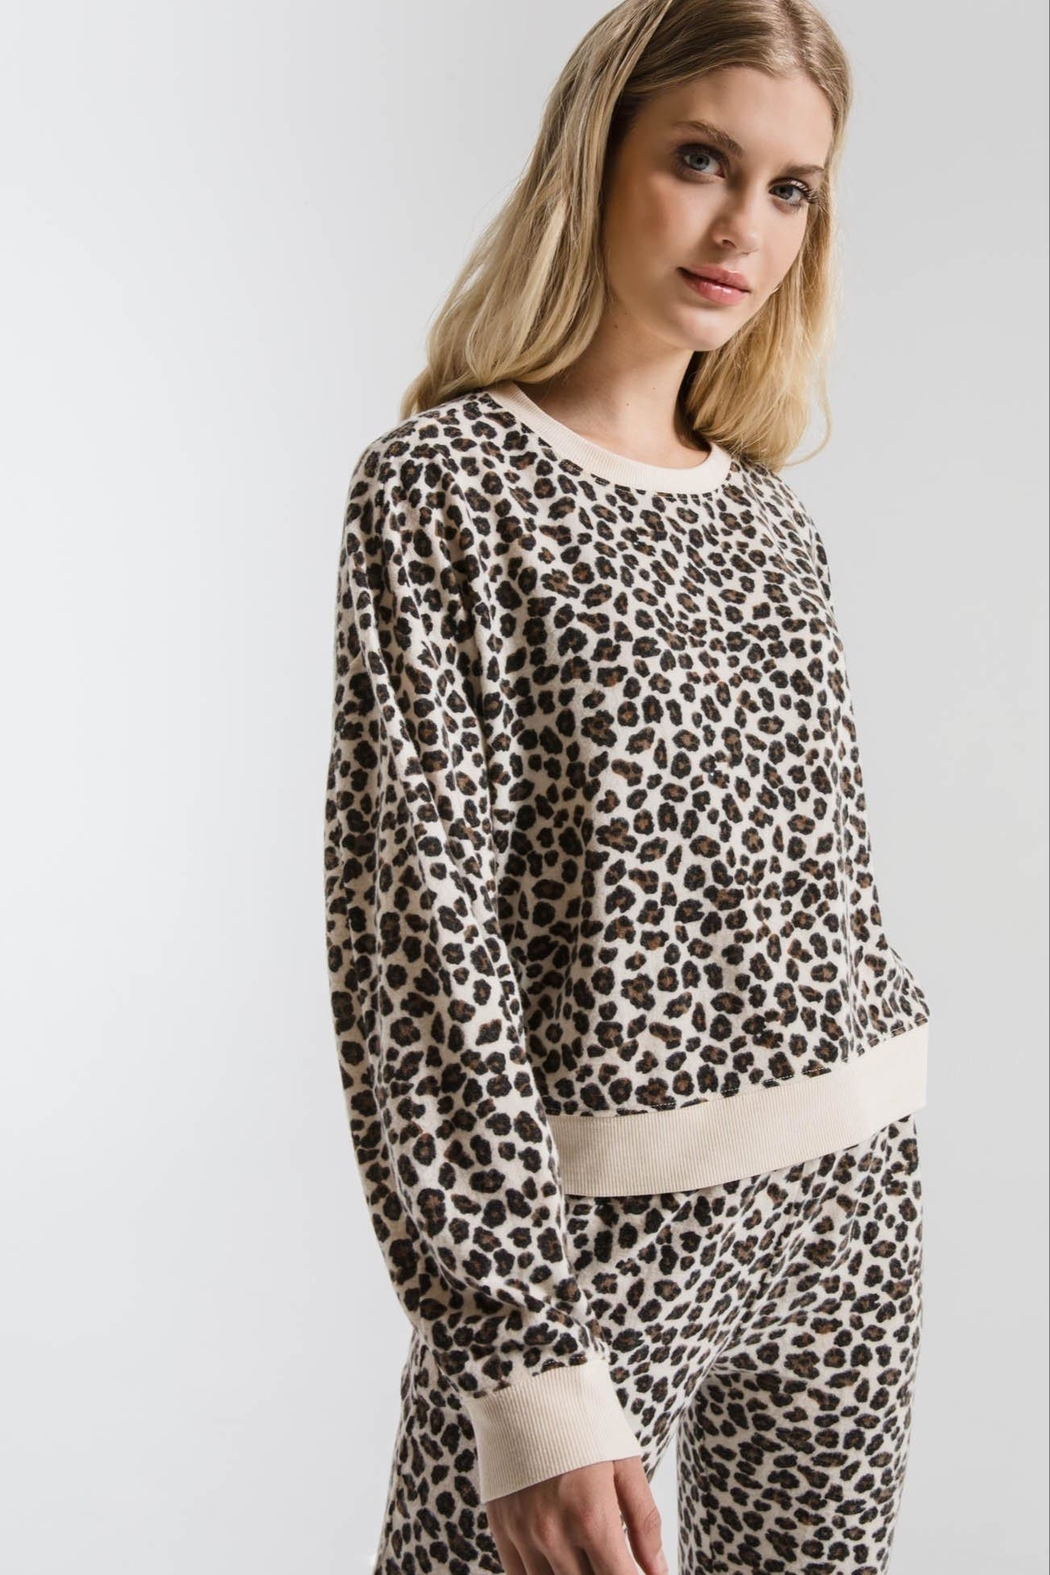 z supply Brushed Leopard Pullover - Side Cropped Image